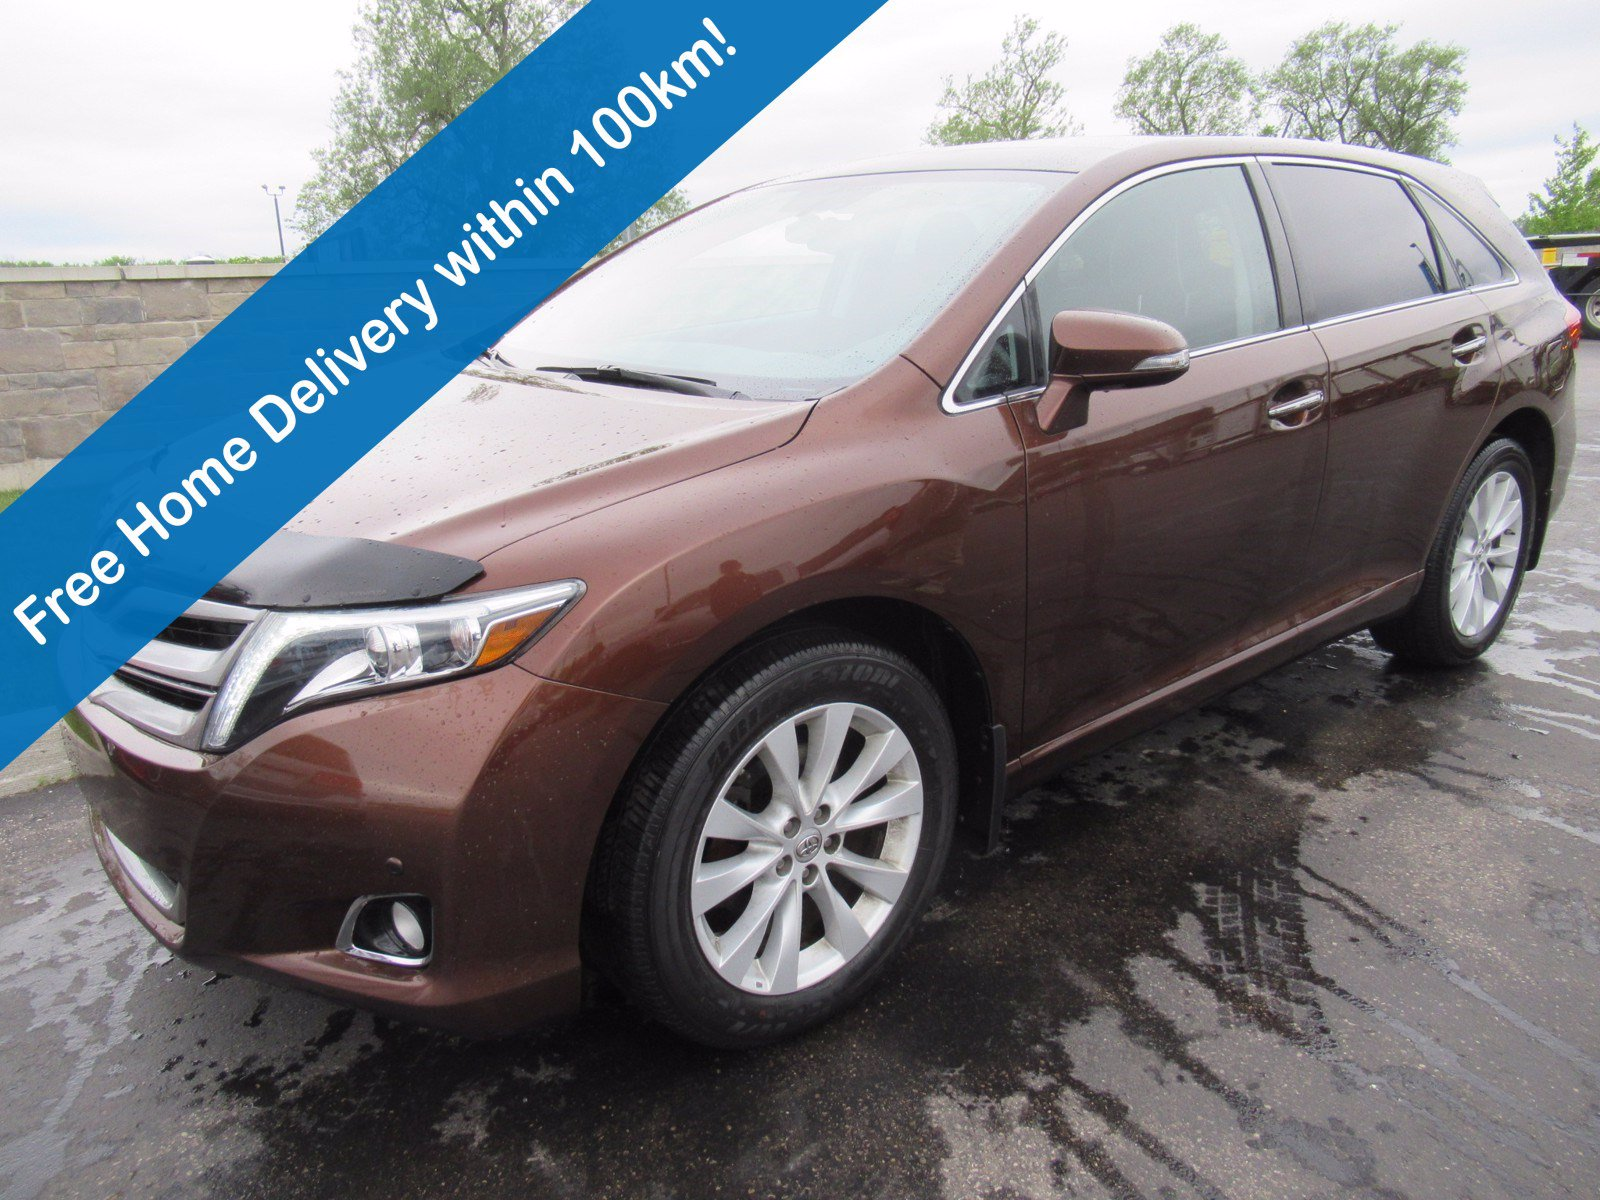 Certified Pre-Owned 2015 Toyota Venza Limited AWD, Leather, Sunroof, Navigation, Heated Seats, Power Liftgate, Alloy Wheels & More!